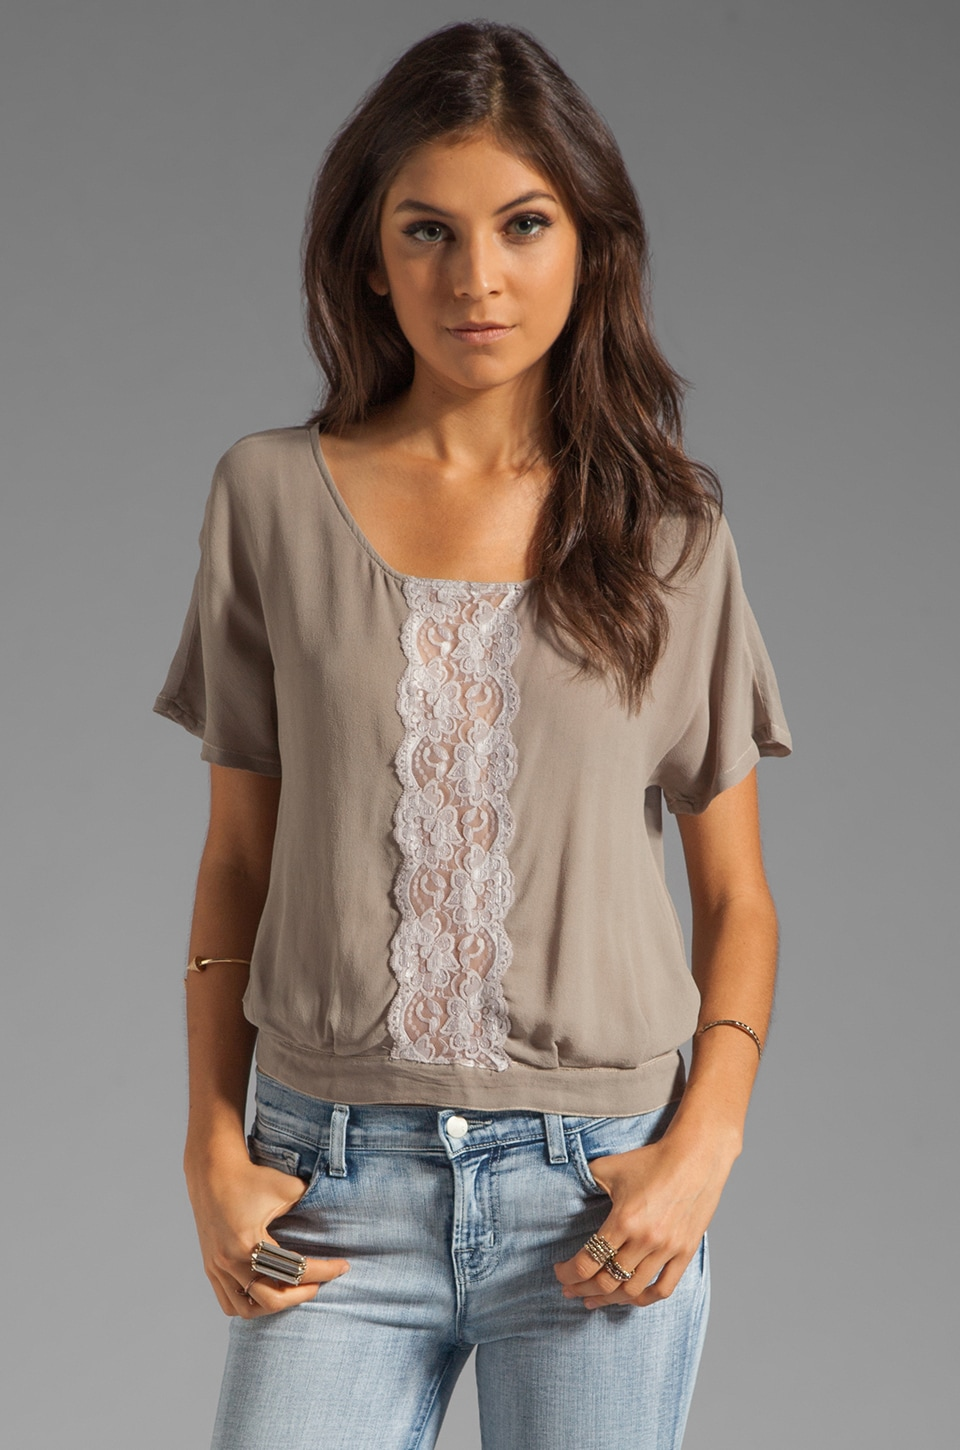 Gypsy 05 Criseida Top in Silver